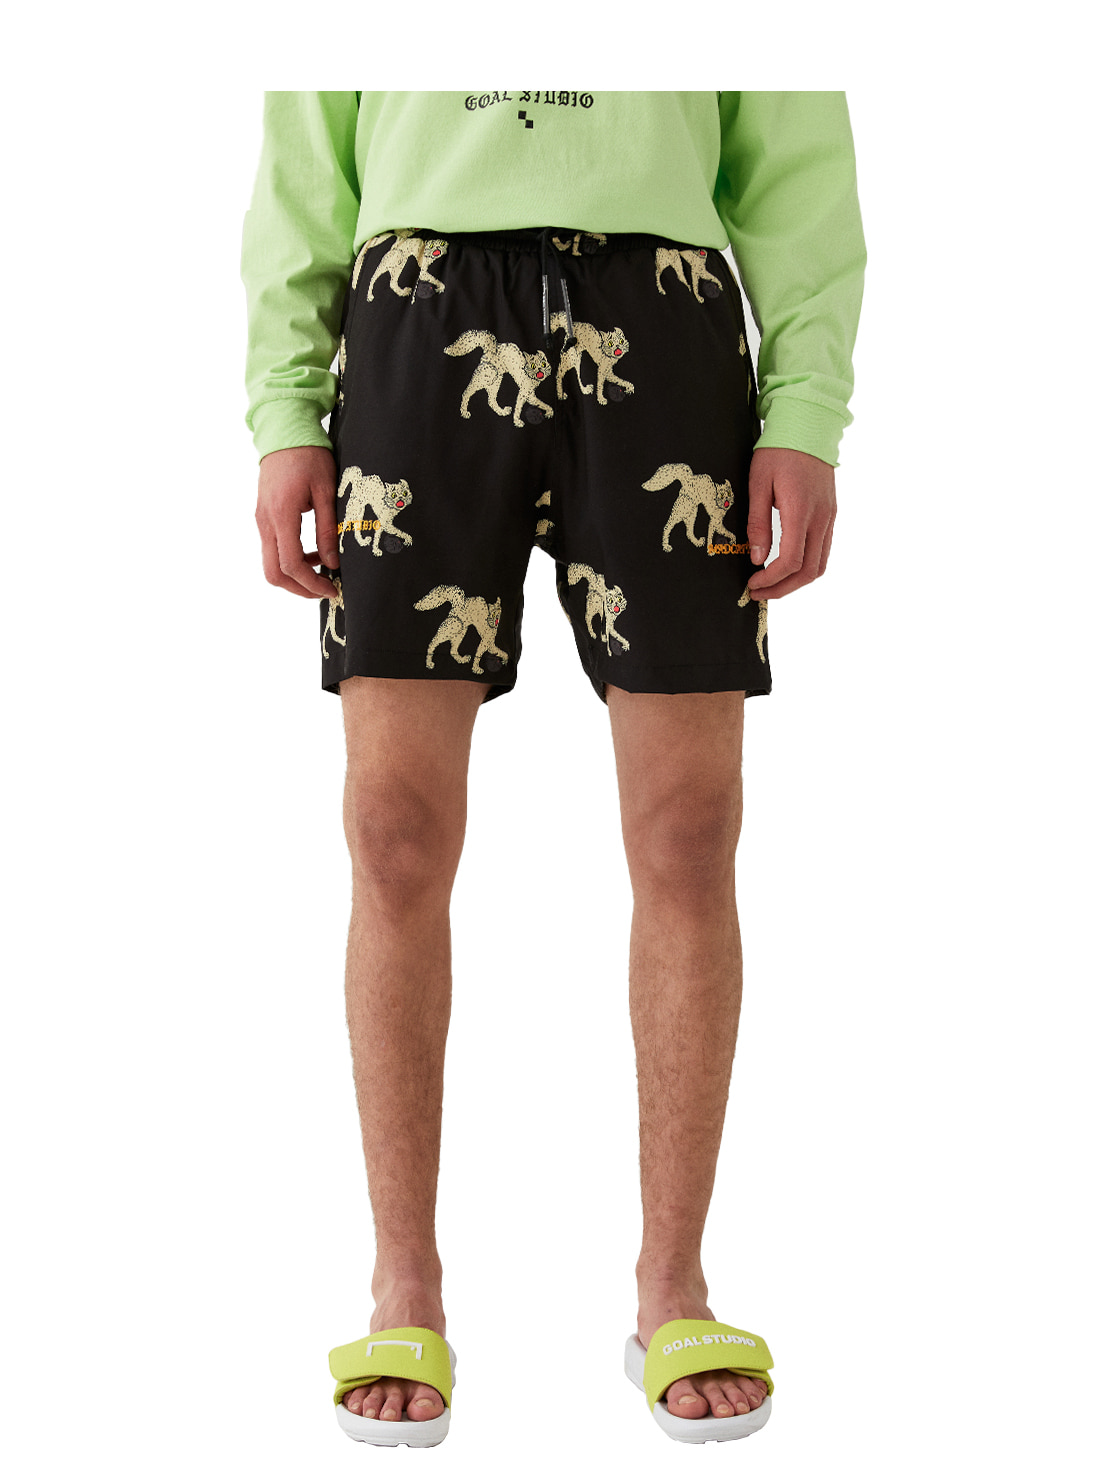 GOALSTUDIO MC ALL OVER PATTERN SHORTS - BLACK